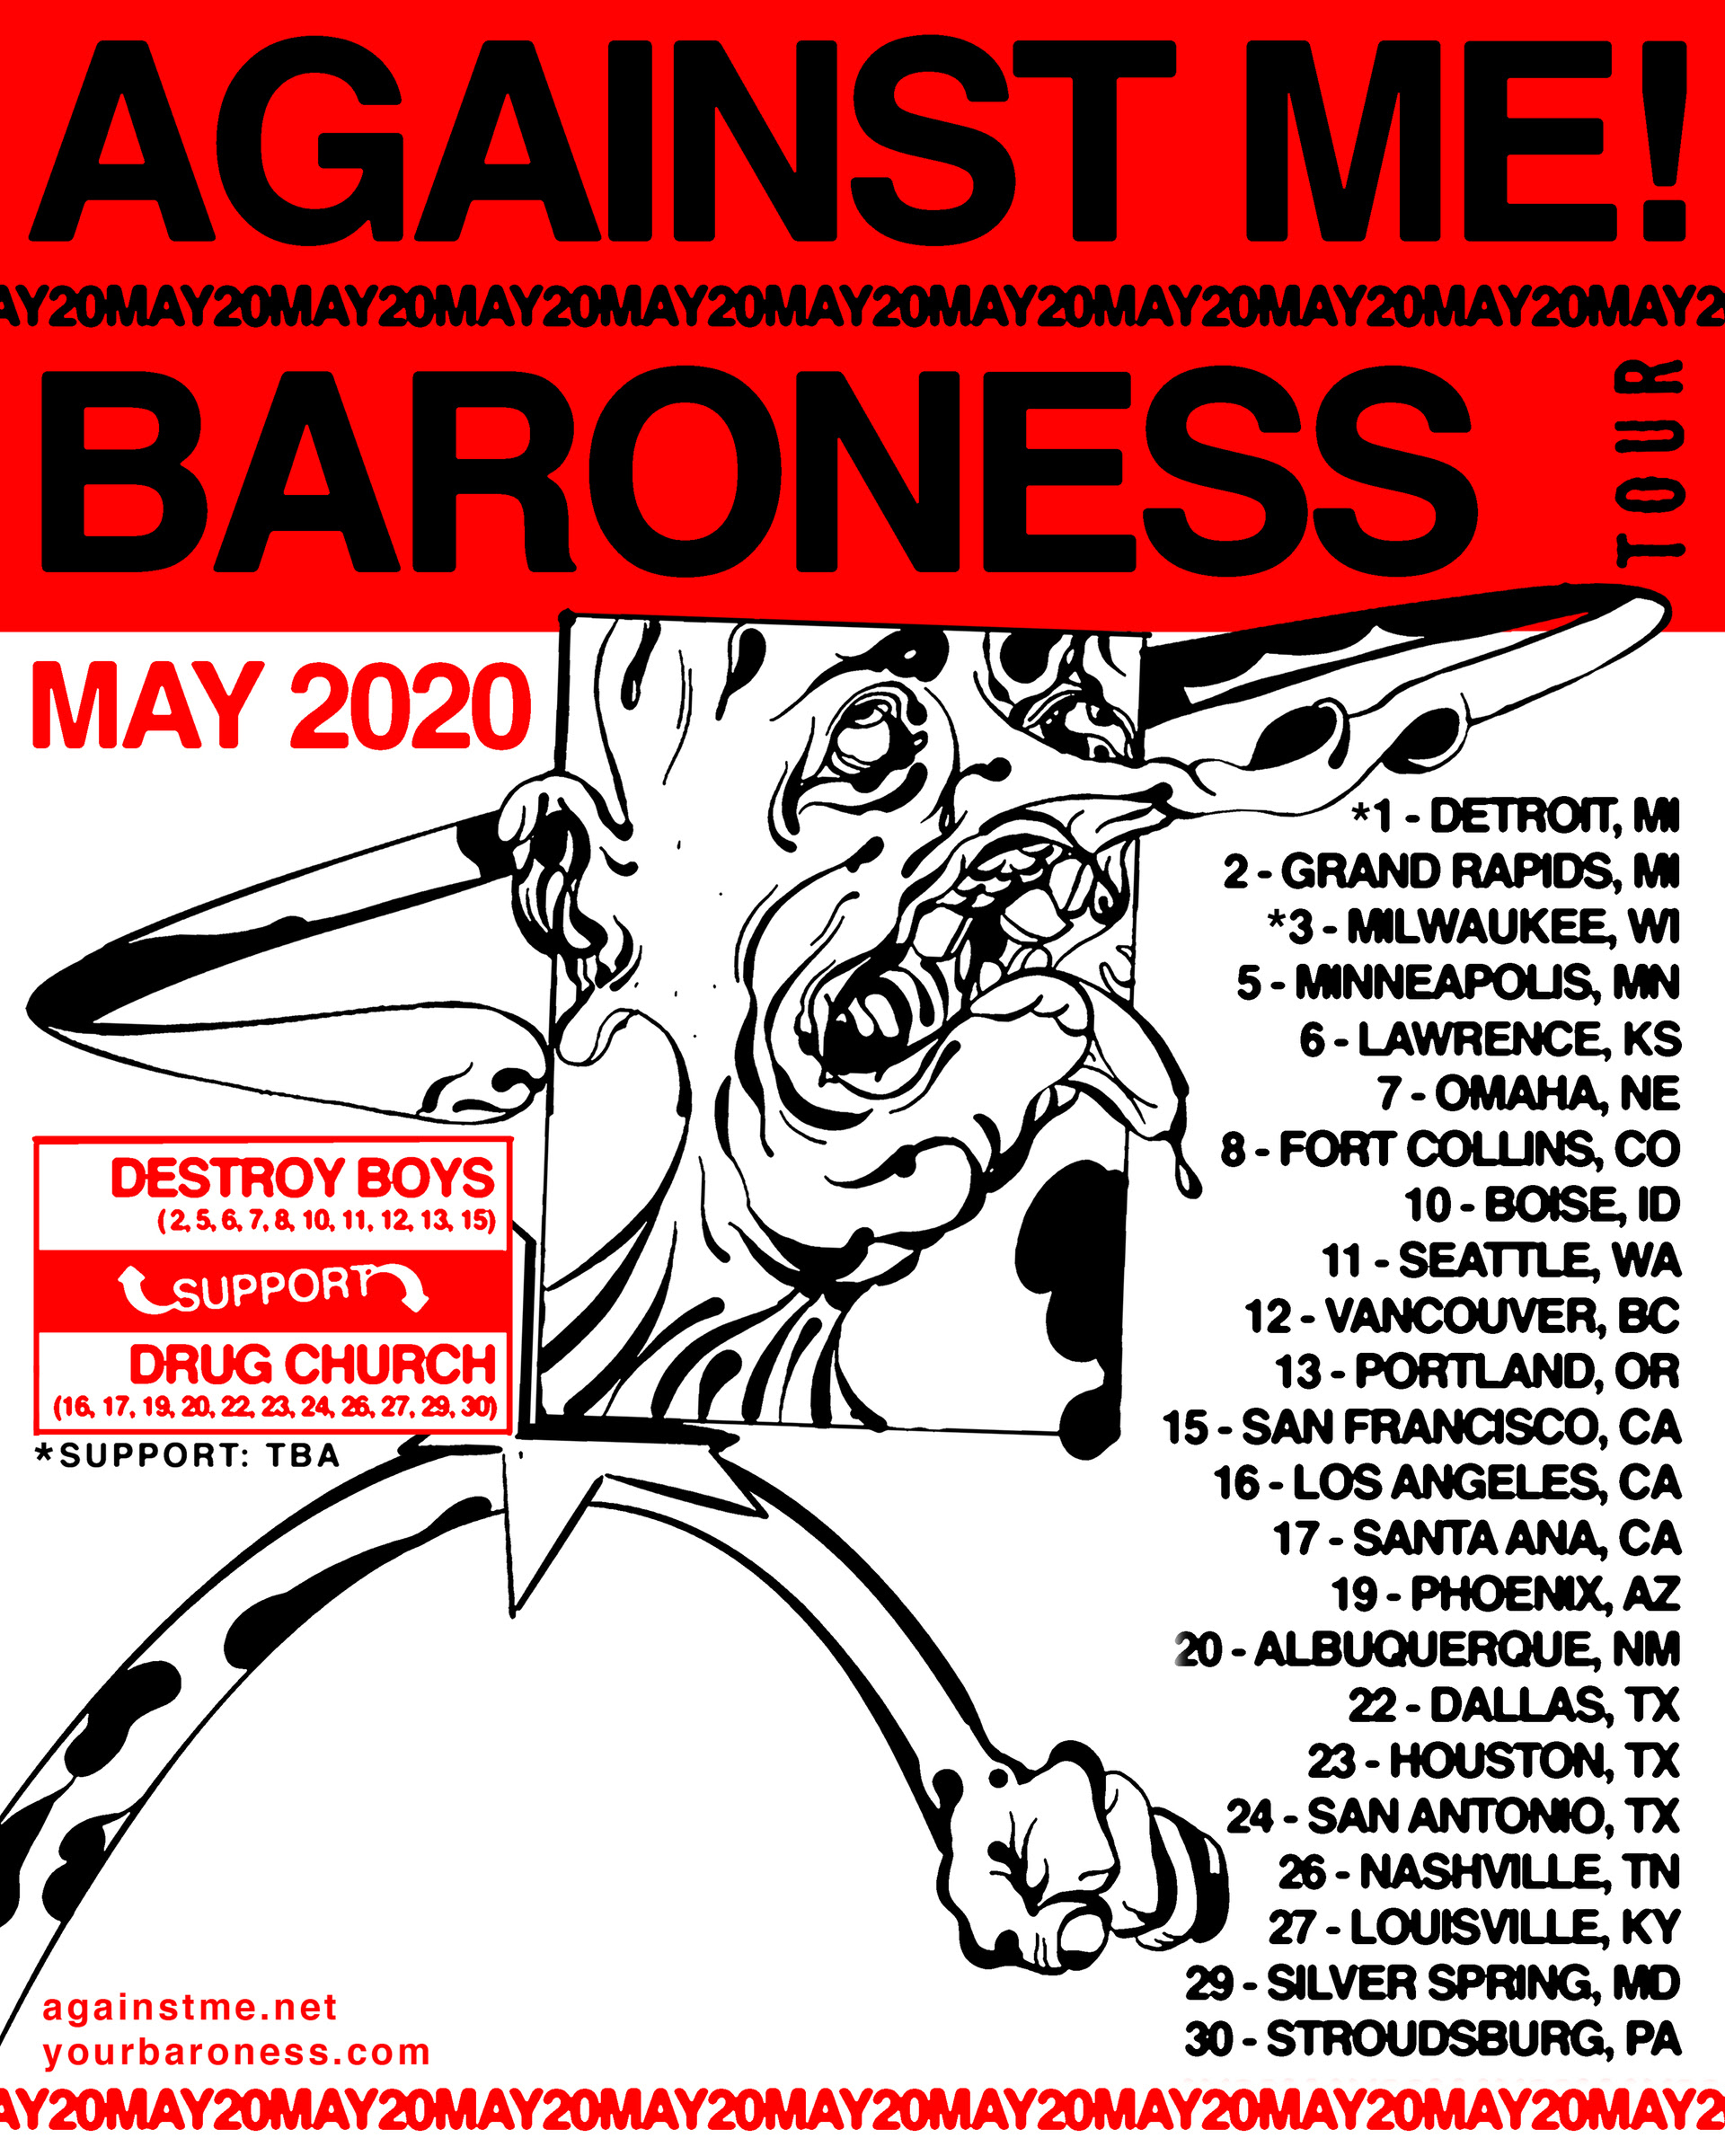 against me baroness tour